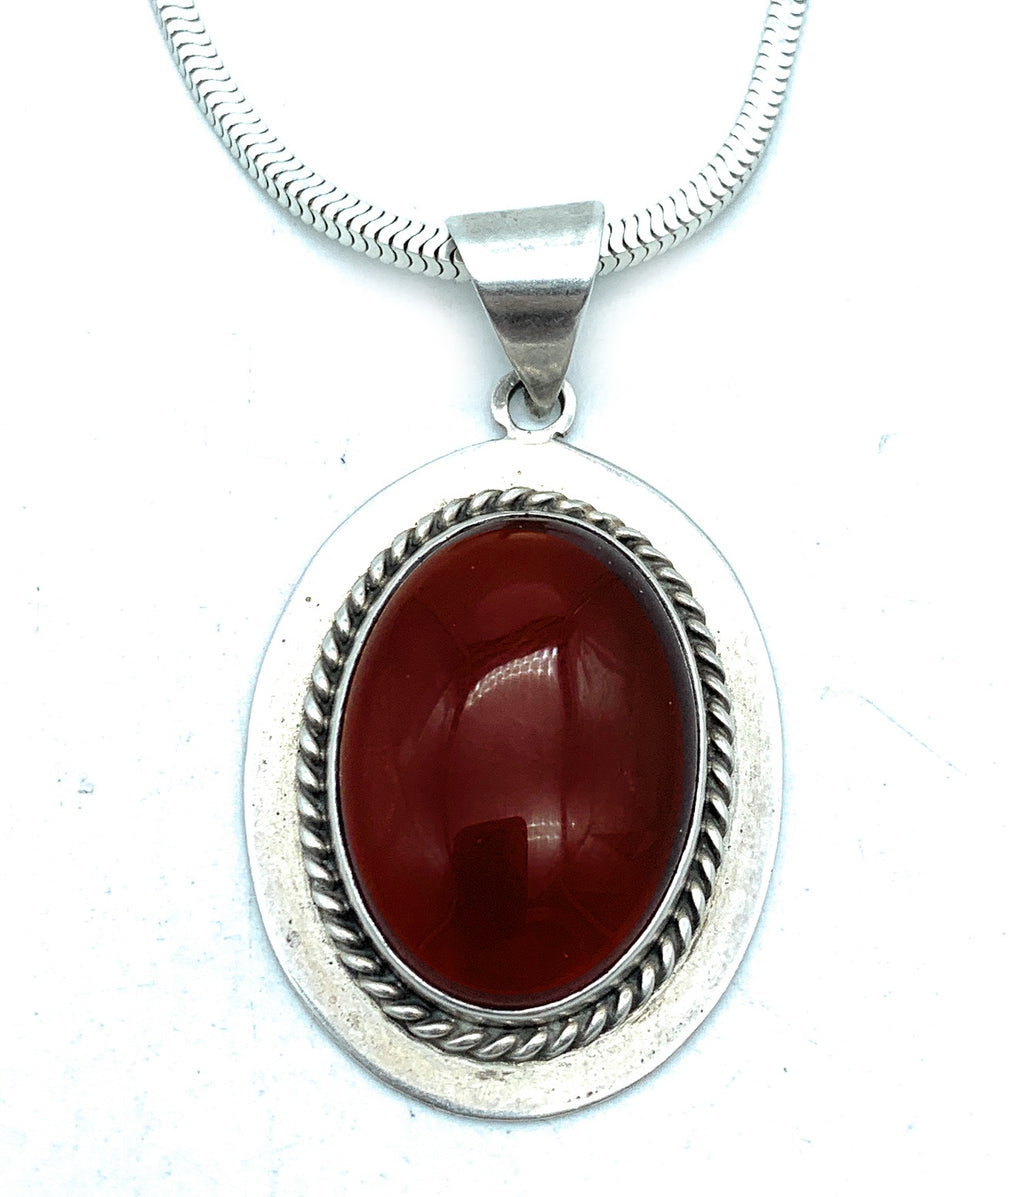 Vintage Sterling Silver & Oval Carnelian Pendant & Snake Box Chain Necklace